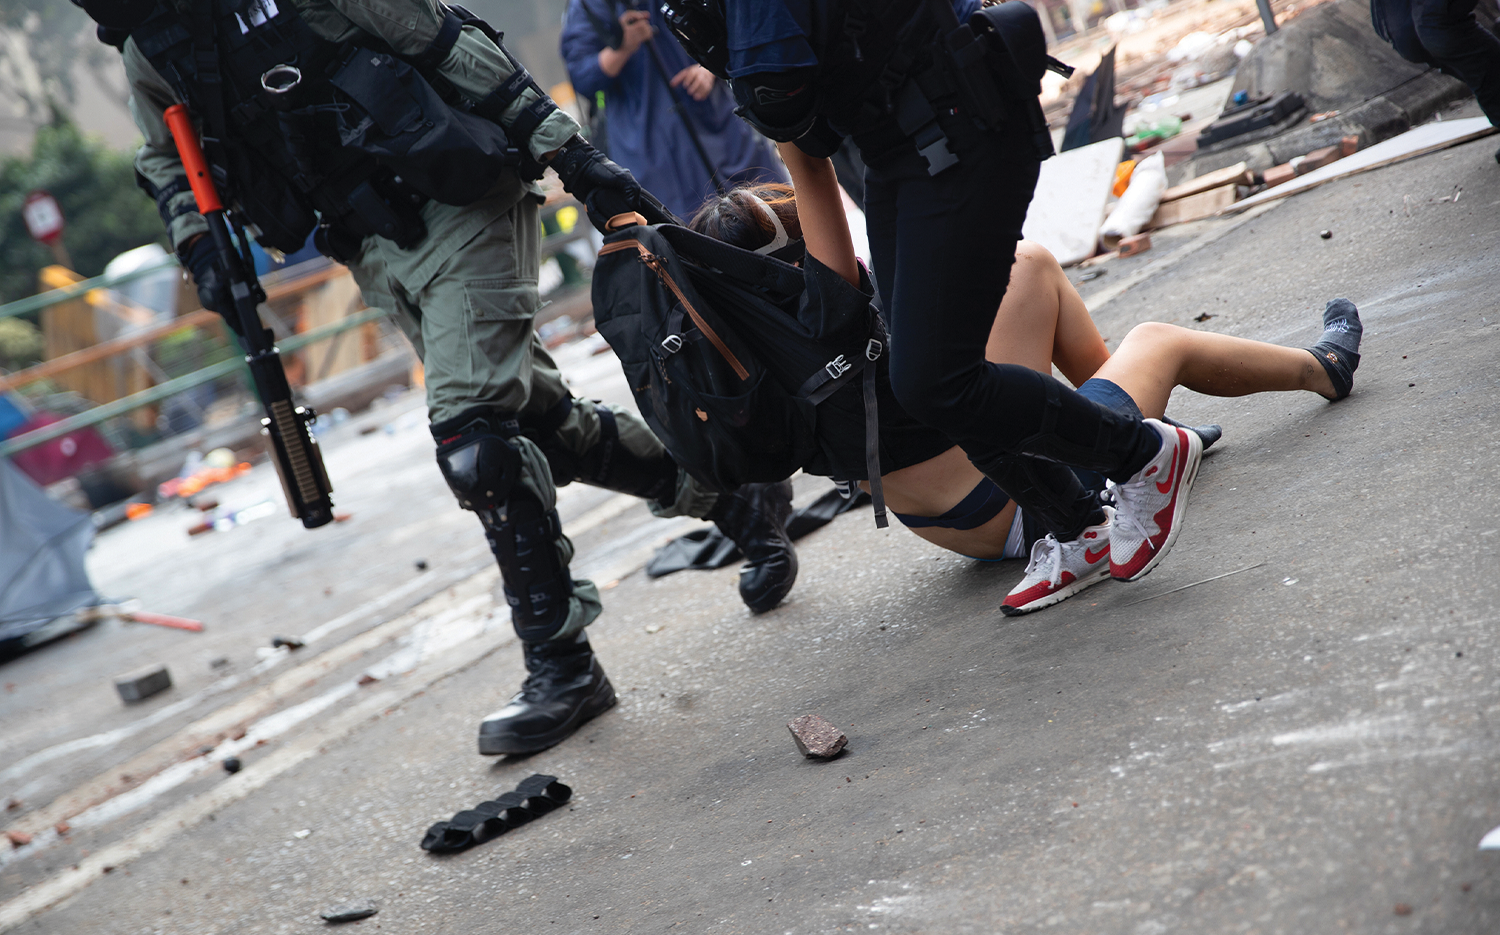 During the 2019 siege at PolyU, Hong Kong police arrest a student.